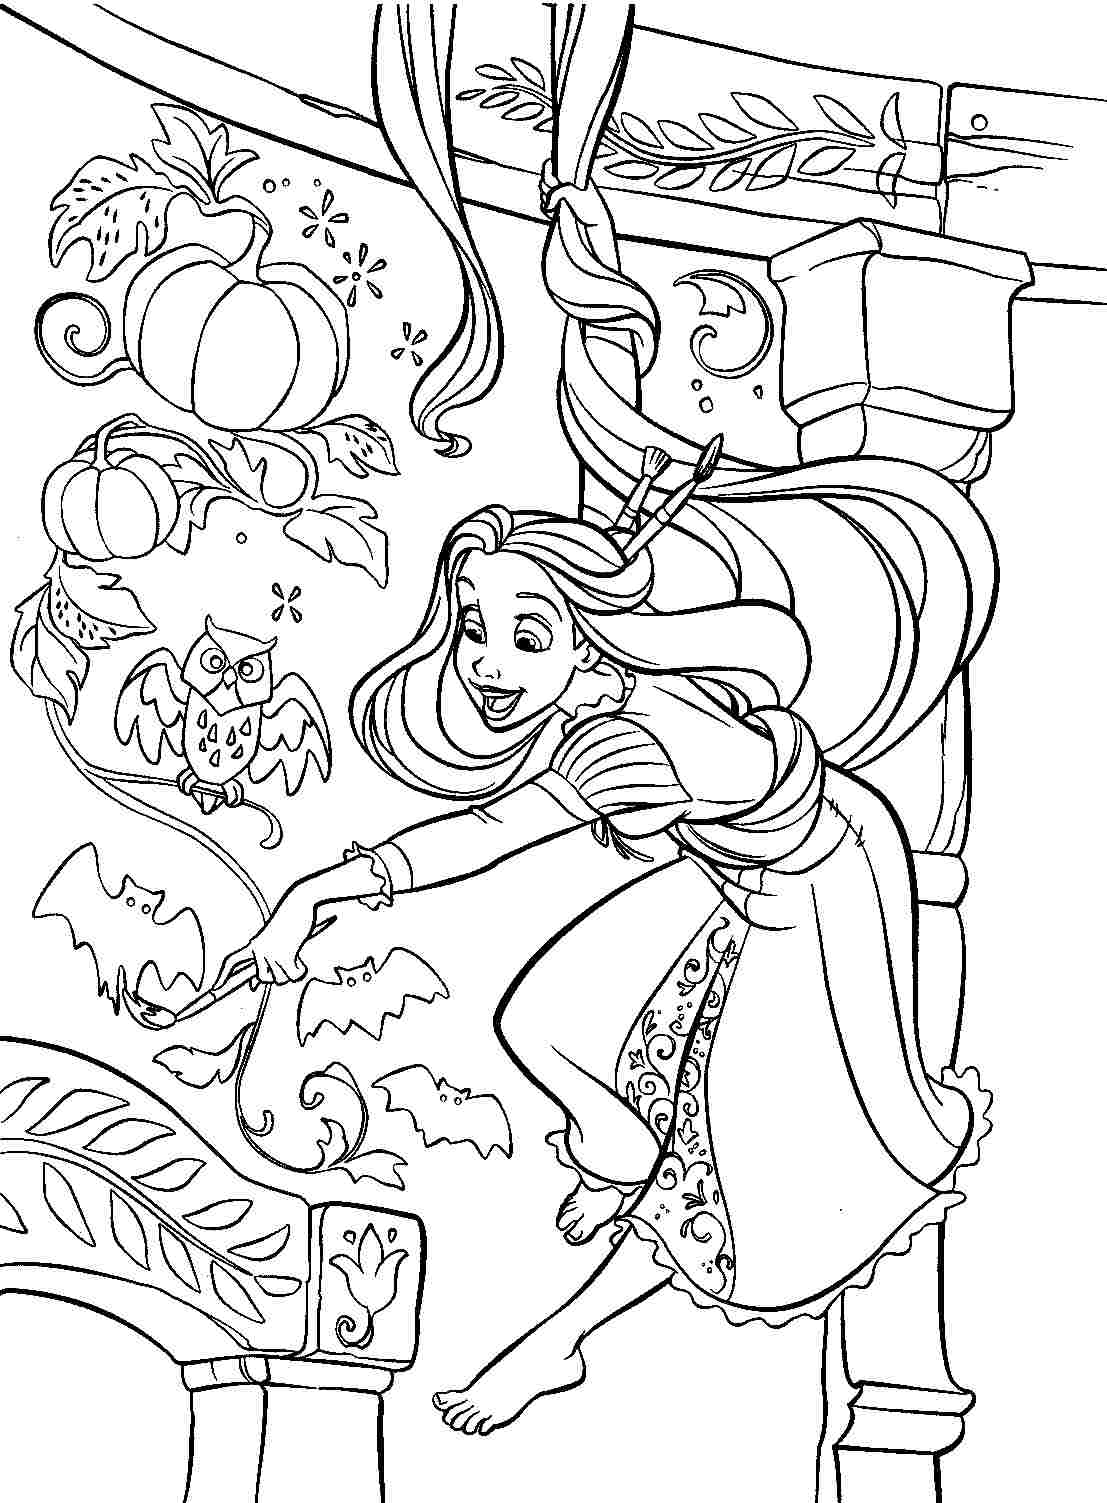 free rapunzel coloring pages rapunzel from disney tangled coloring page free free rapunzel pages coloring